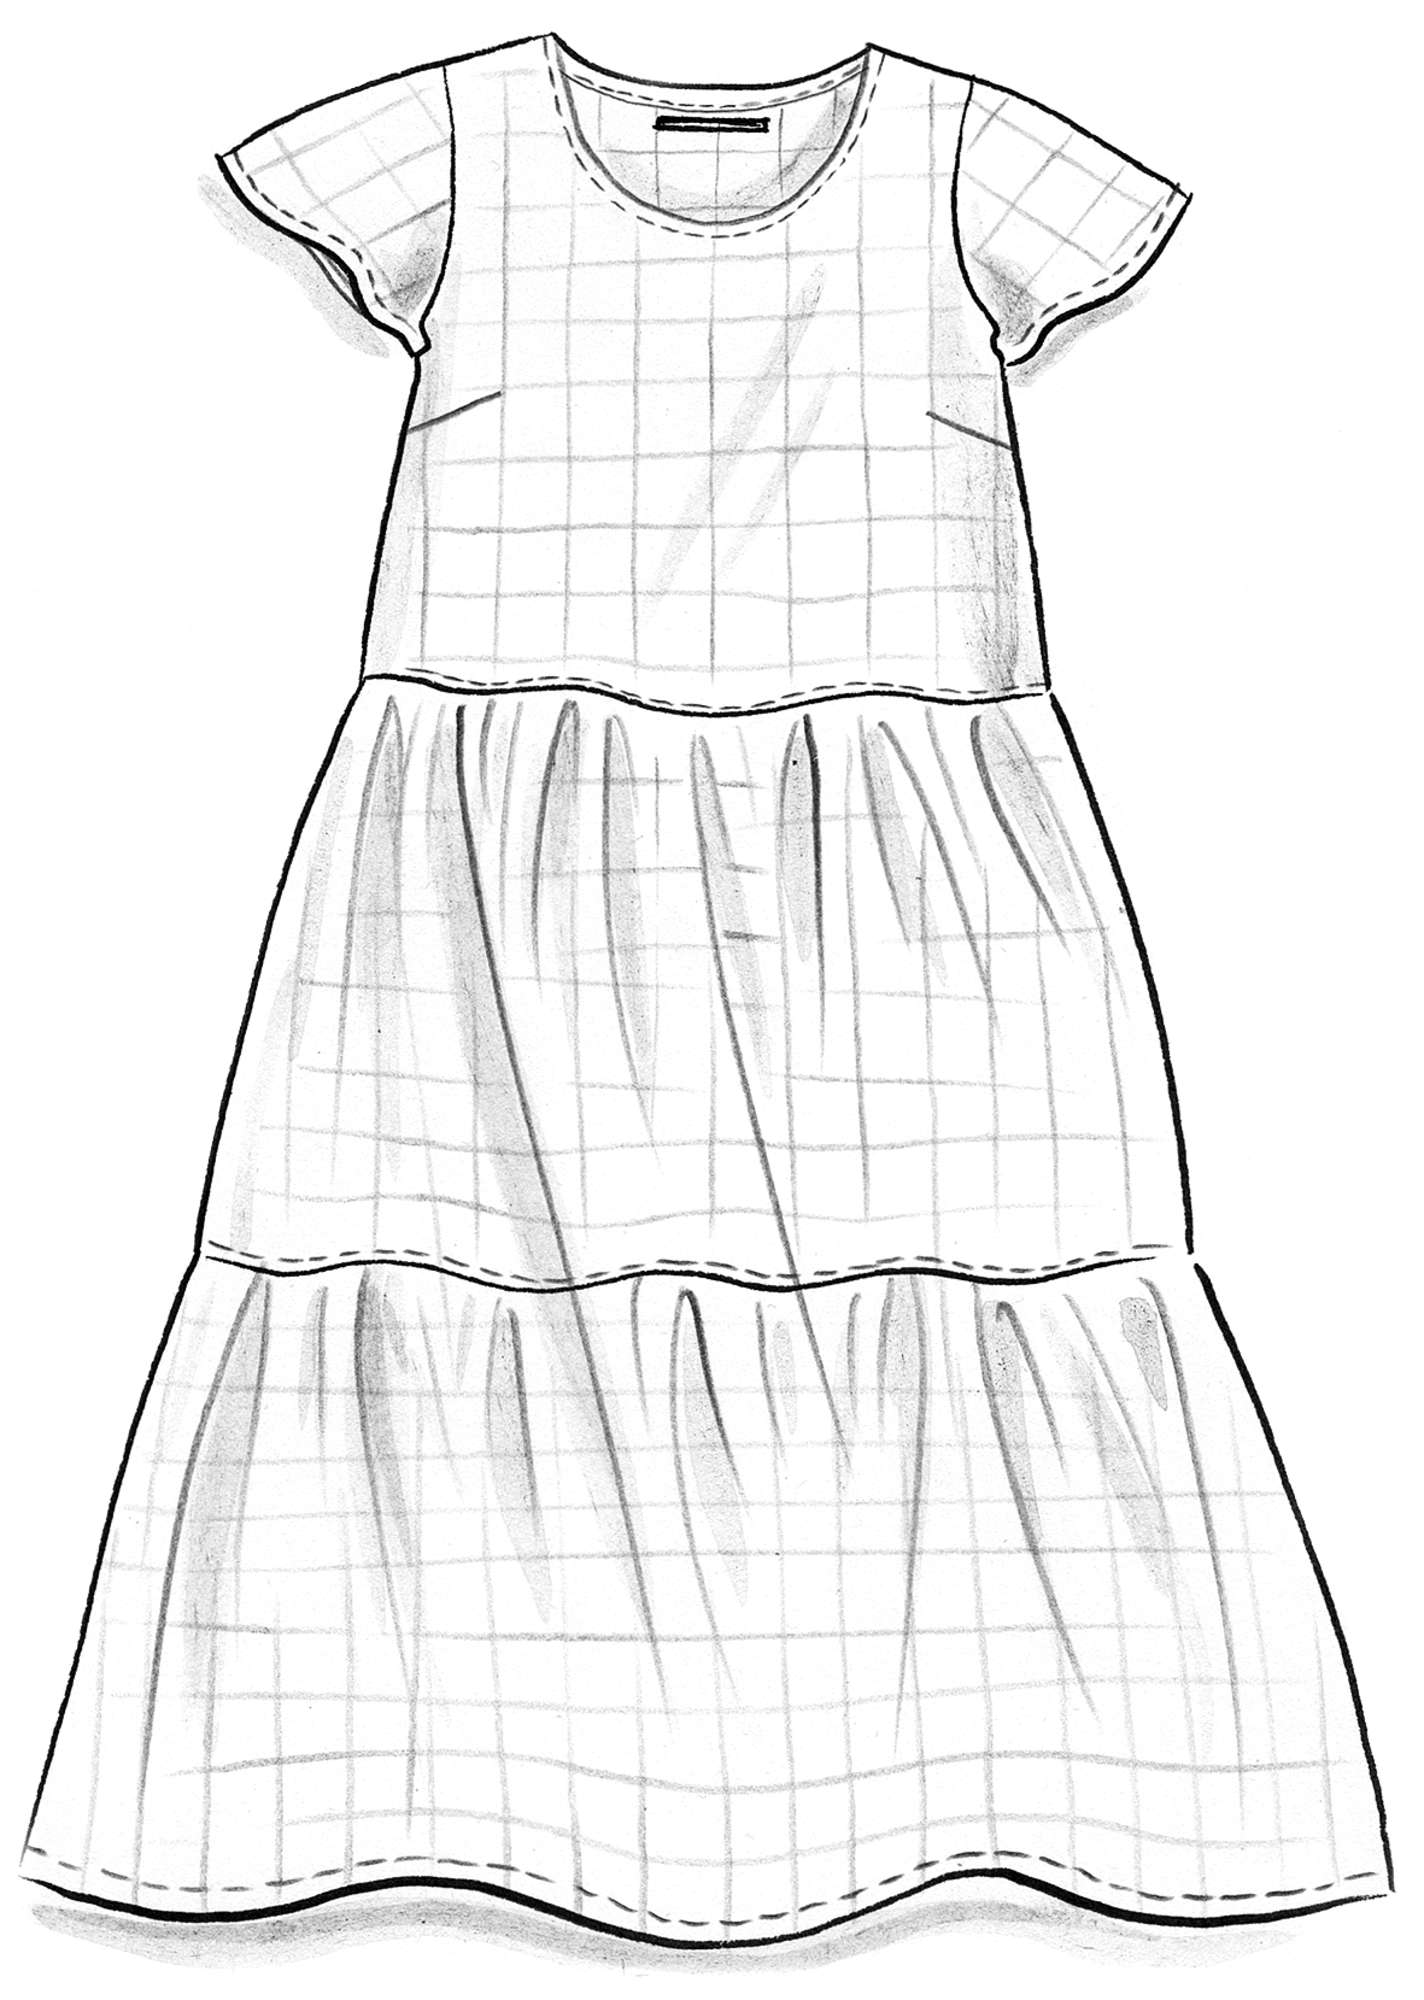 Linen/cotton dress